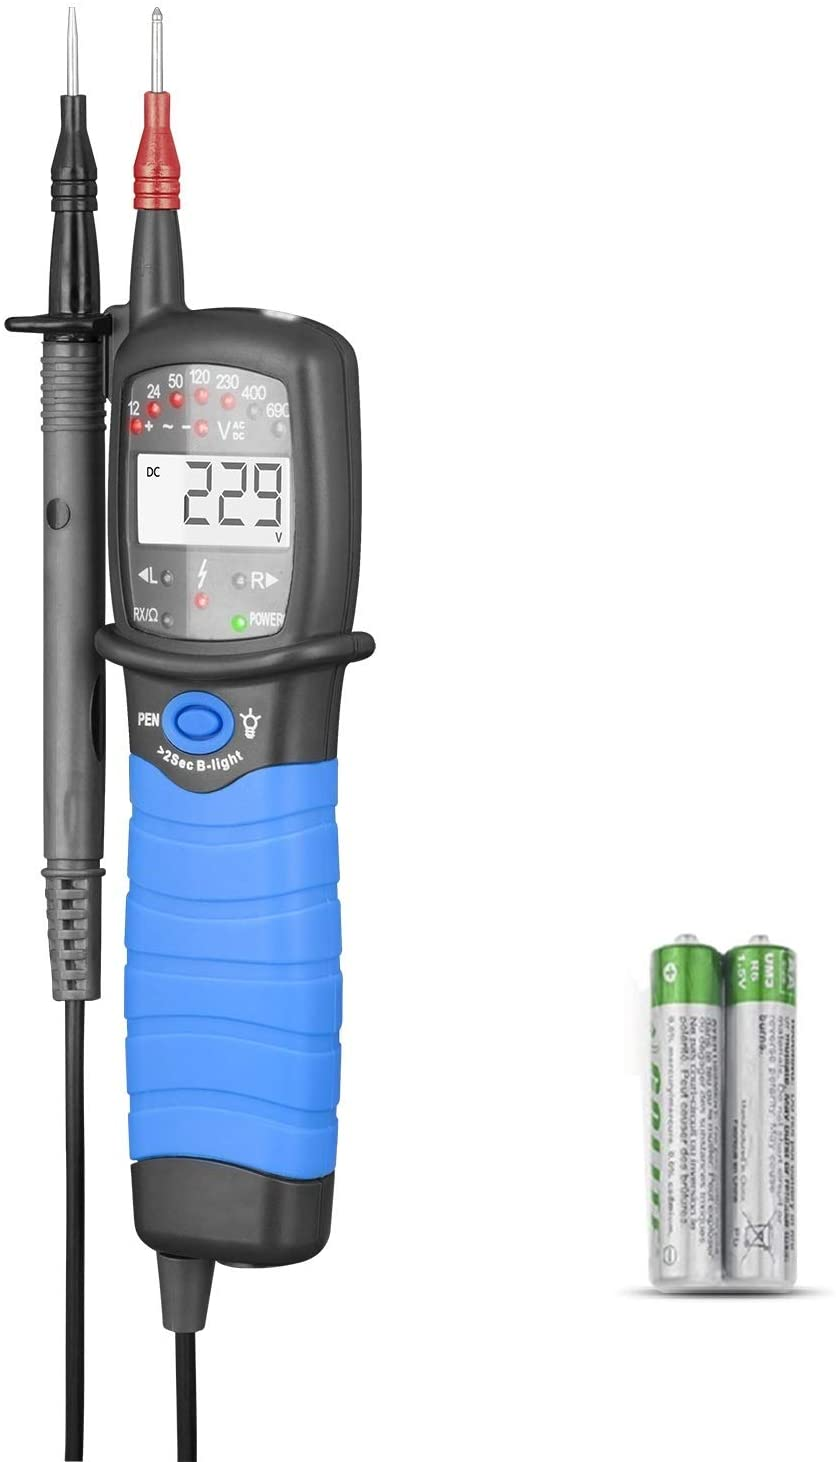 ANNMETER Handheld Voltage Tester AN-38A, Pen Type DC/AC Measurement Meter, Digital High Voltage Indication Gauge,Auto Data Hold Electrical Device with Pen Back Light